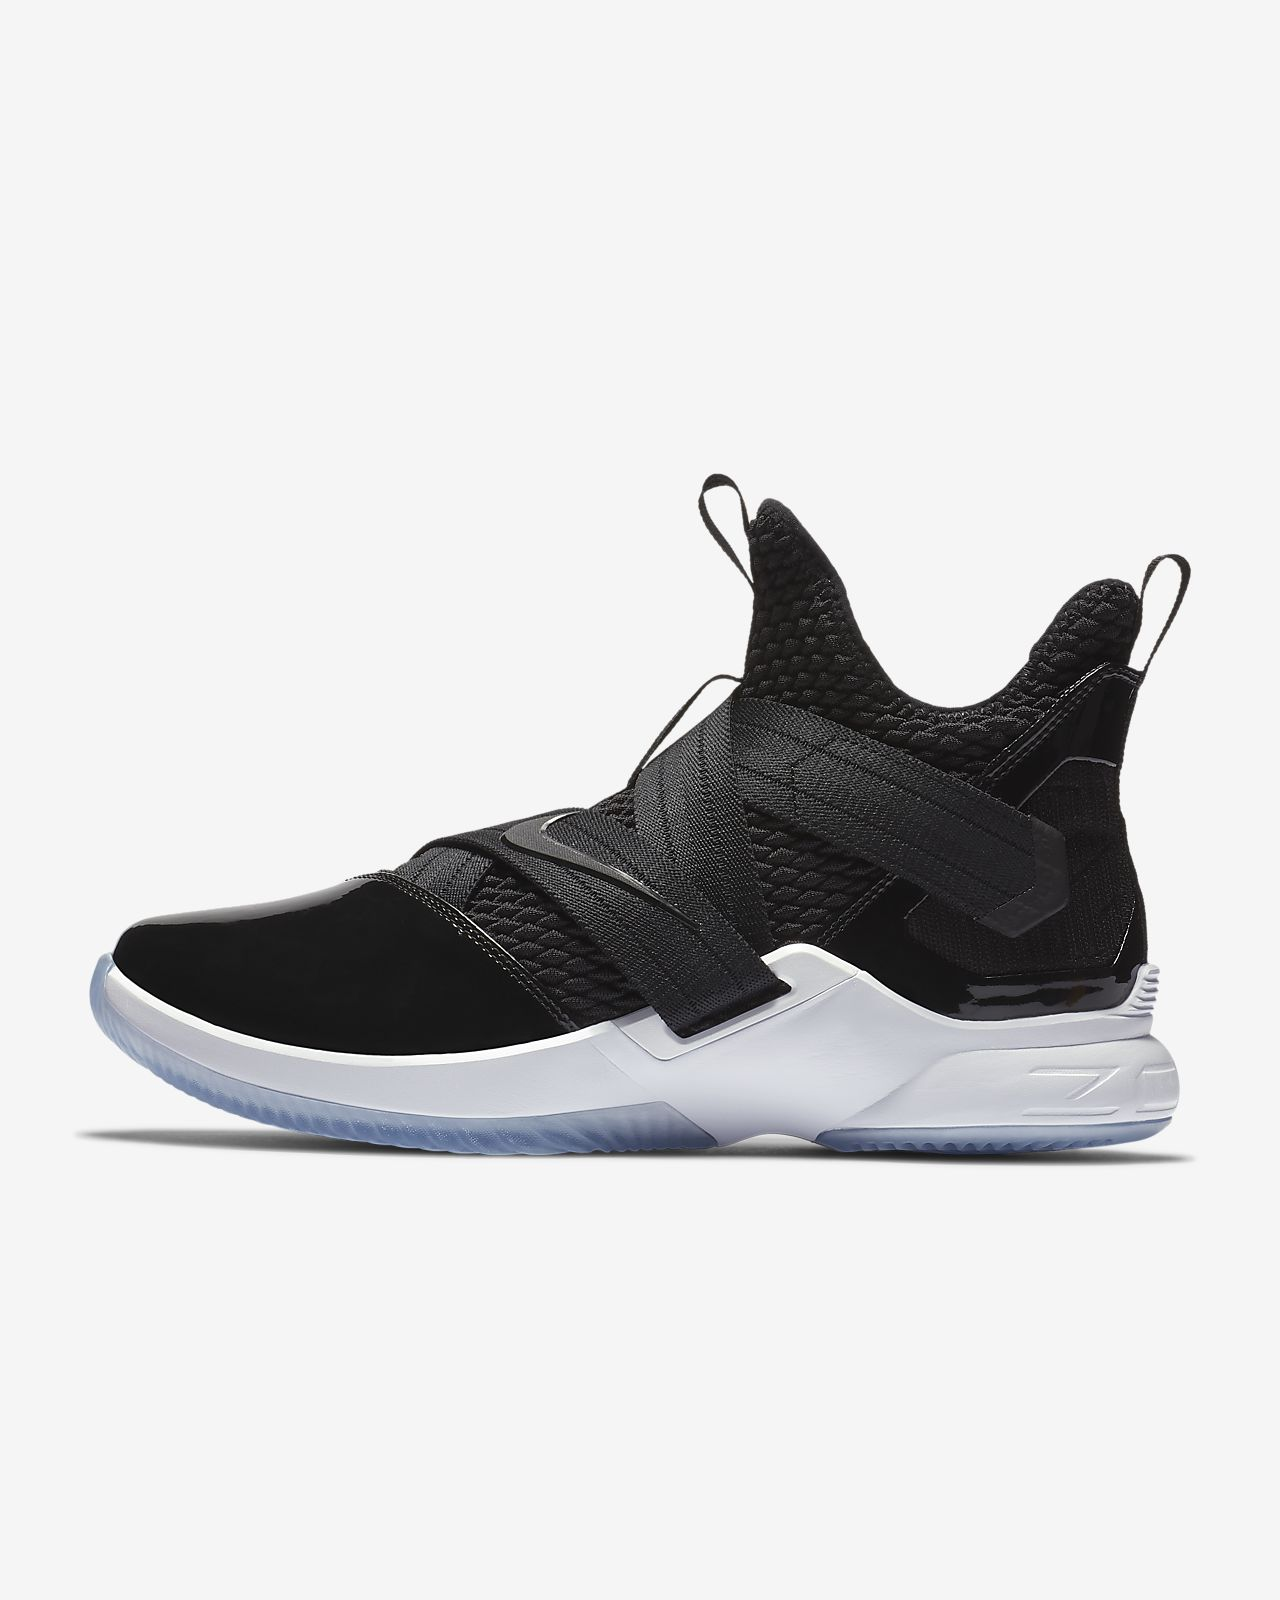 70d66cd9827 LeBron Soldier 12 SFG Basketball Shoe. Nike.com